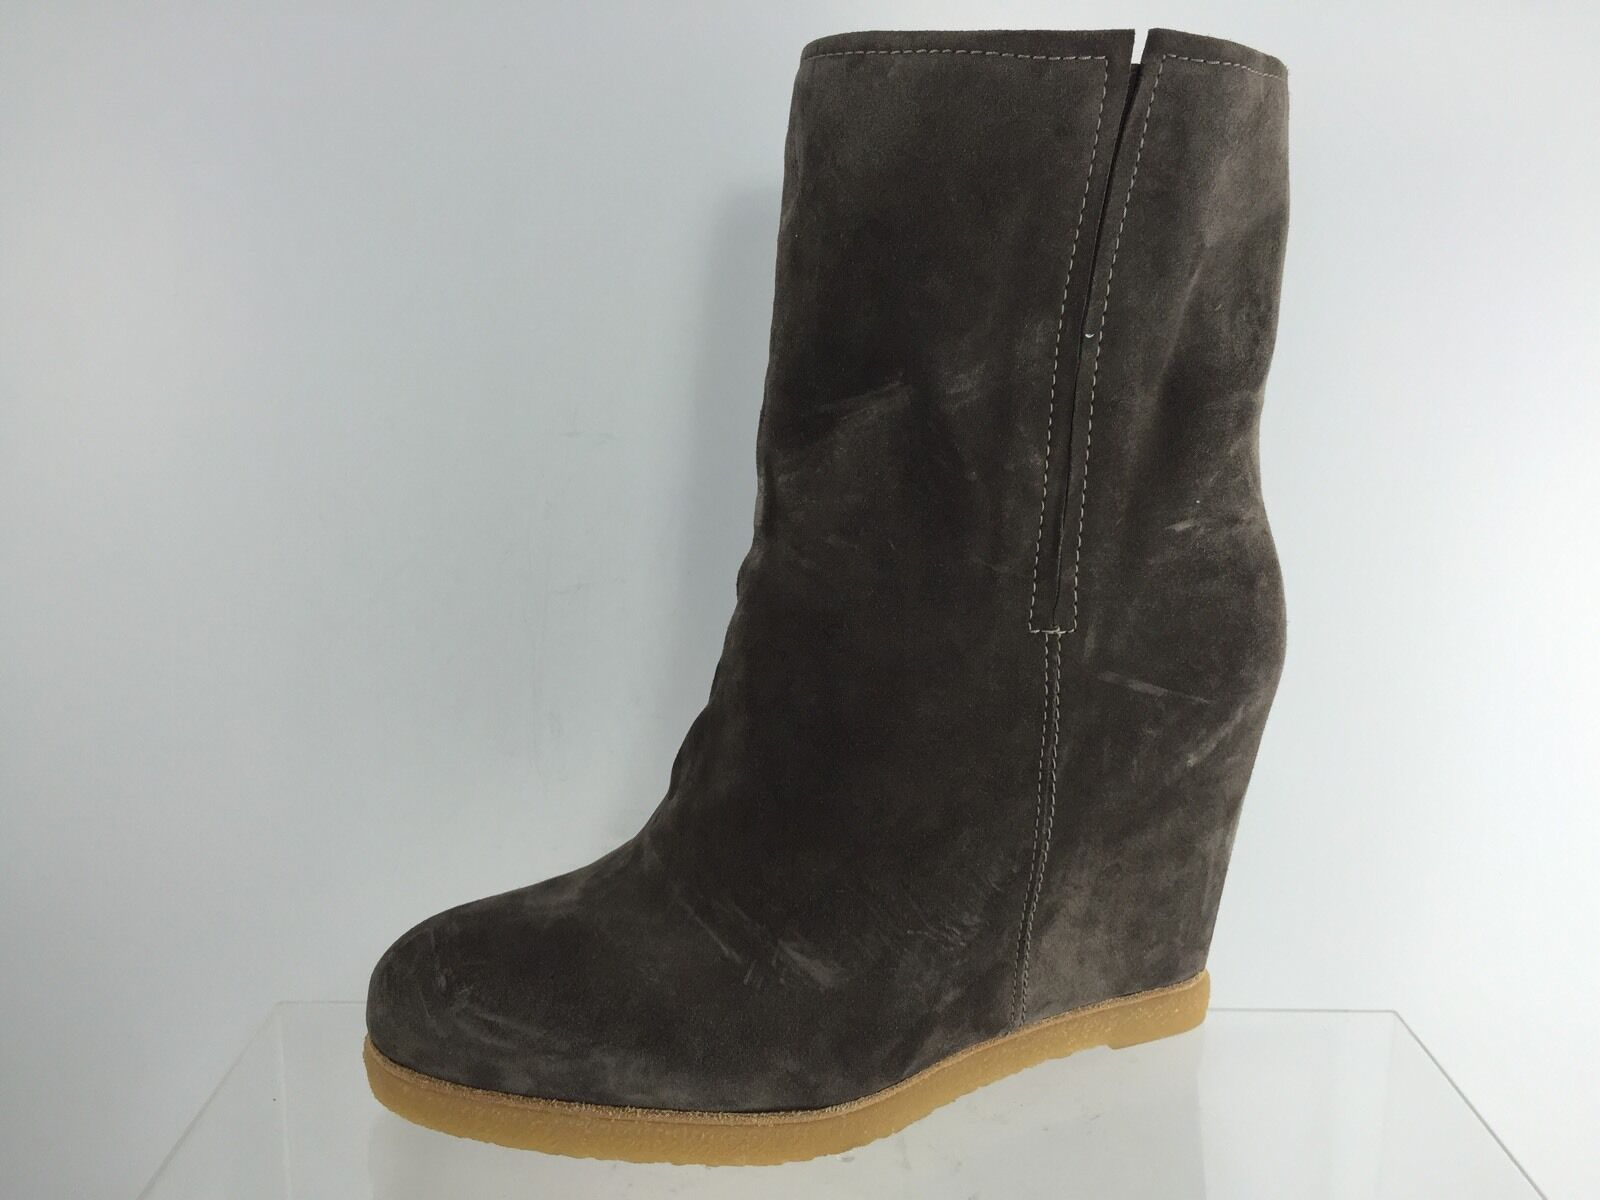 Stuart Weitzman Womens Brown Leather Boots 8.5 M